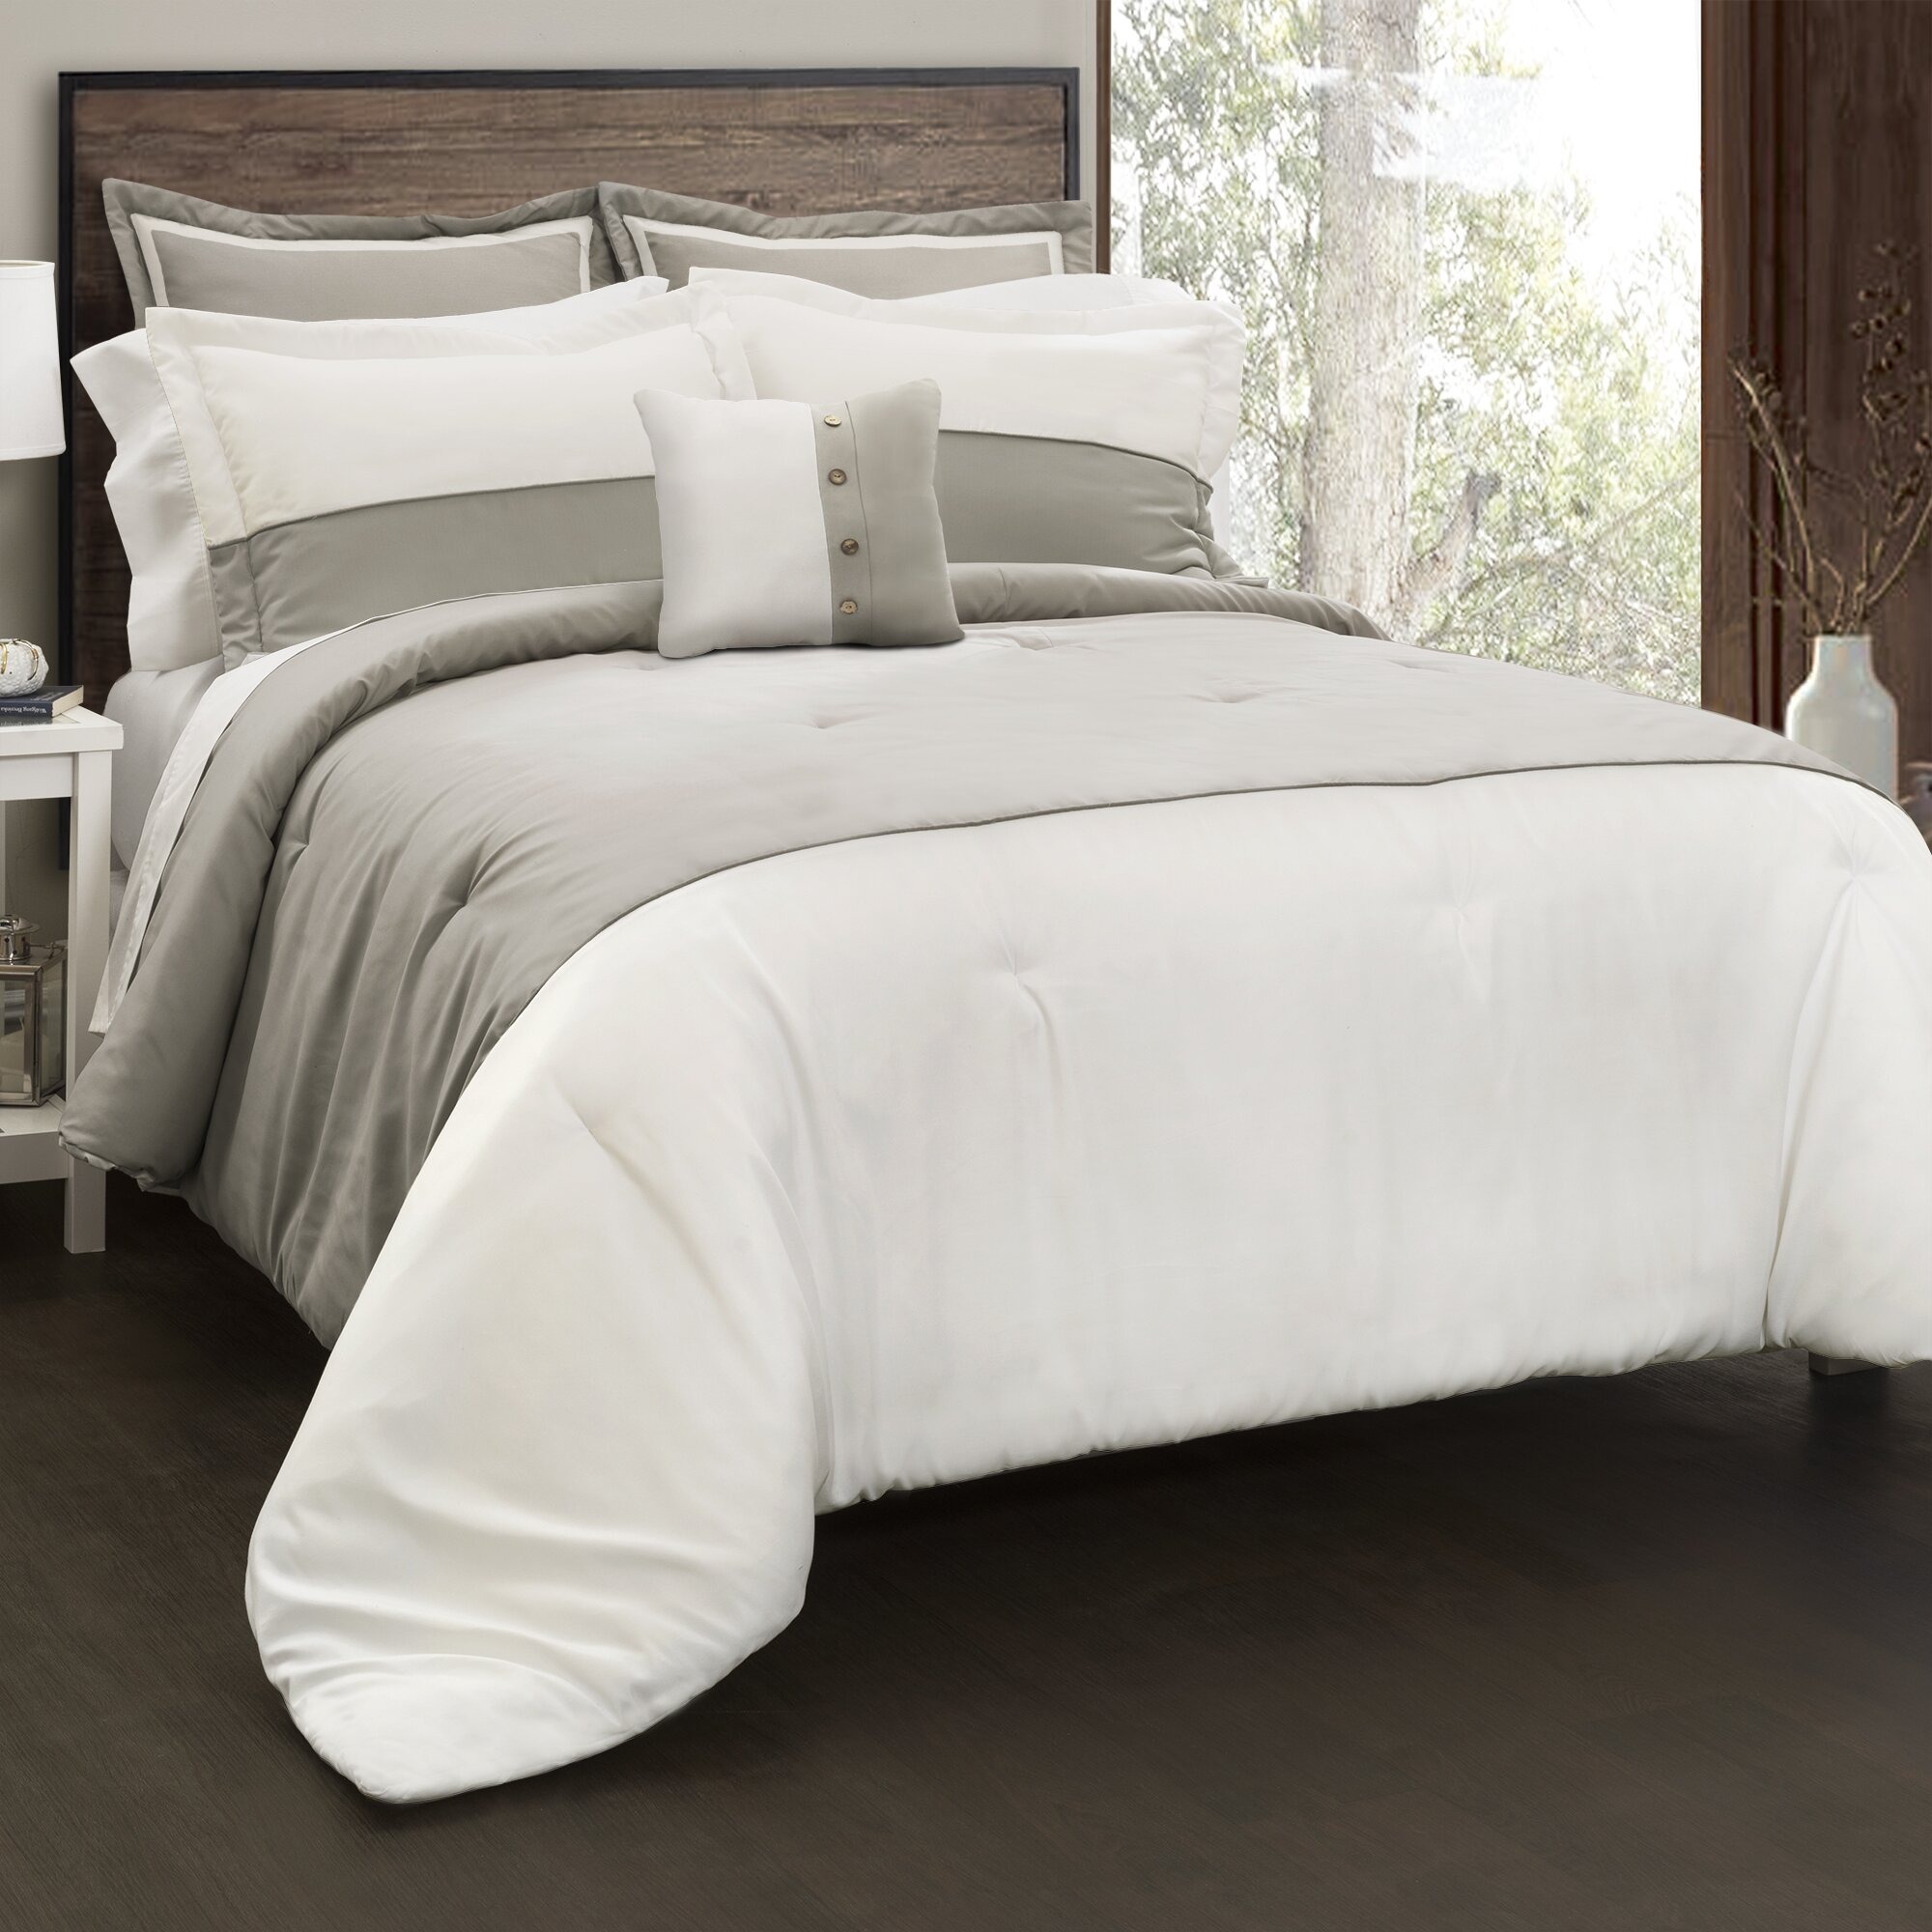 Laurel Foundry Modern Farmhouse Austin 6 Piece Comforter